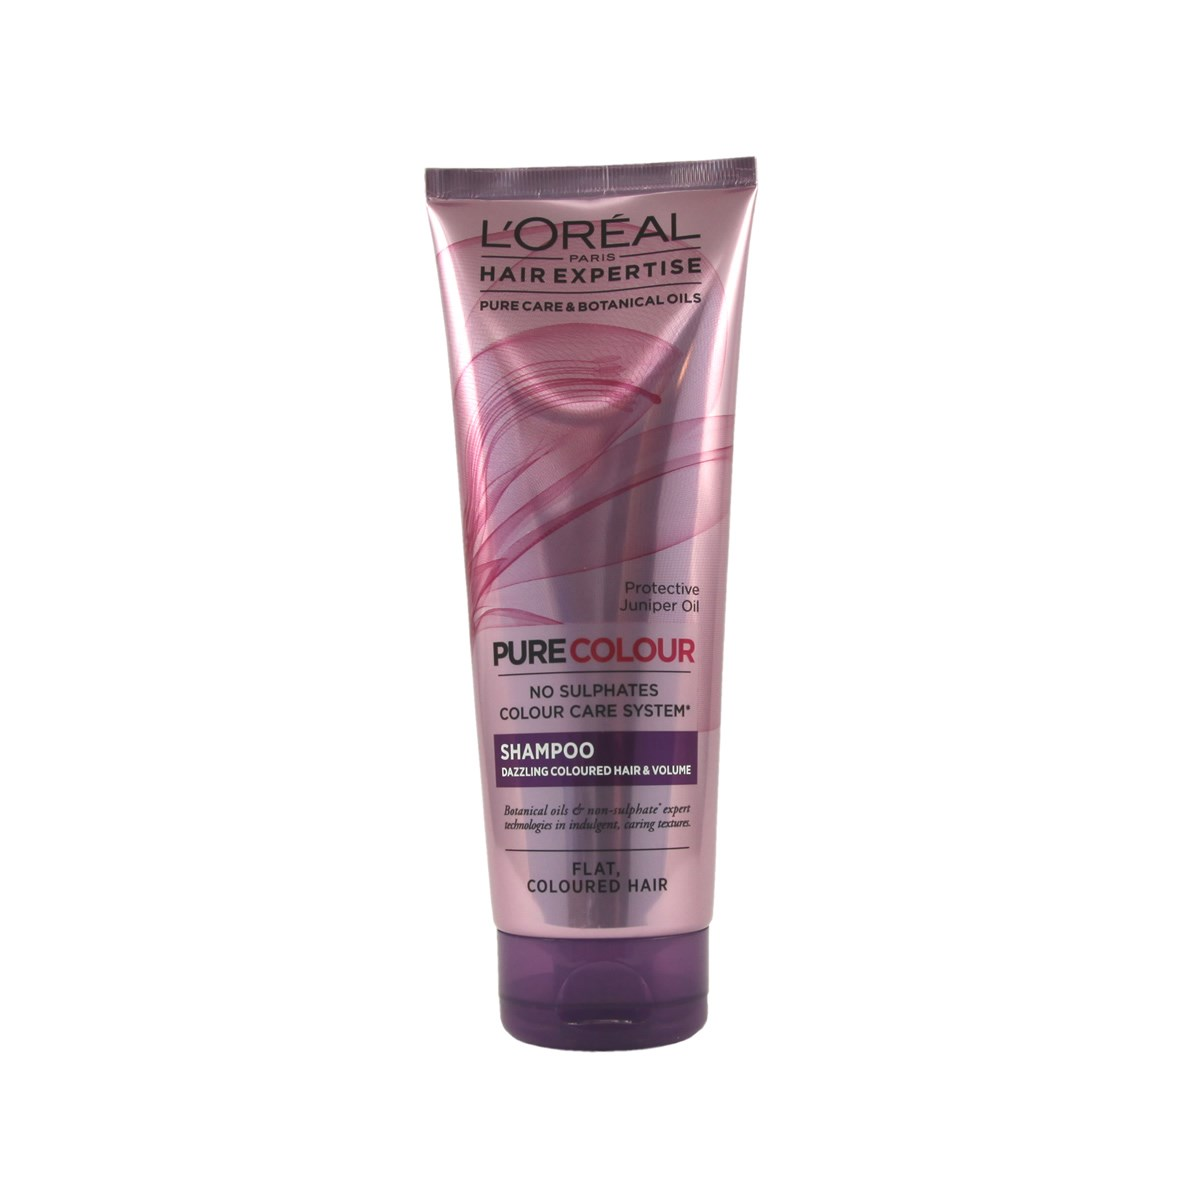 L'Oreal Paris Pure Colour Dazzling Coloured Hair and Volume Shampoo